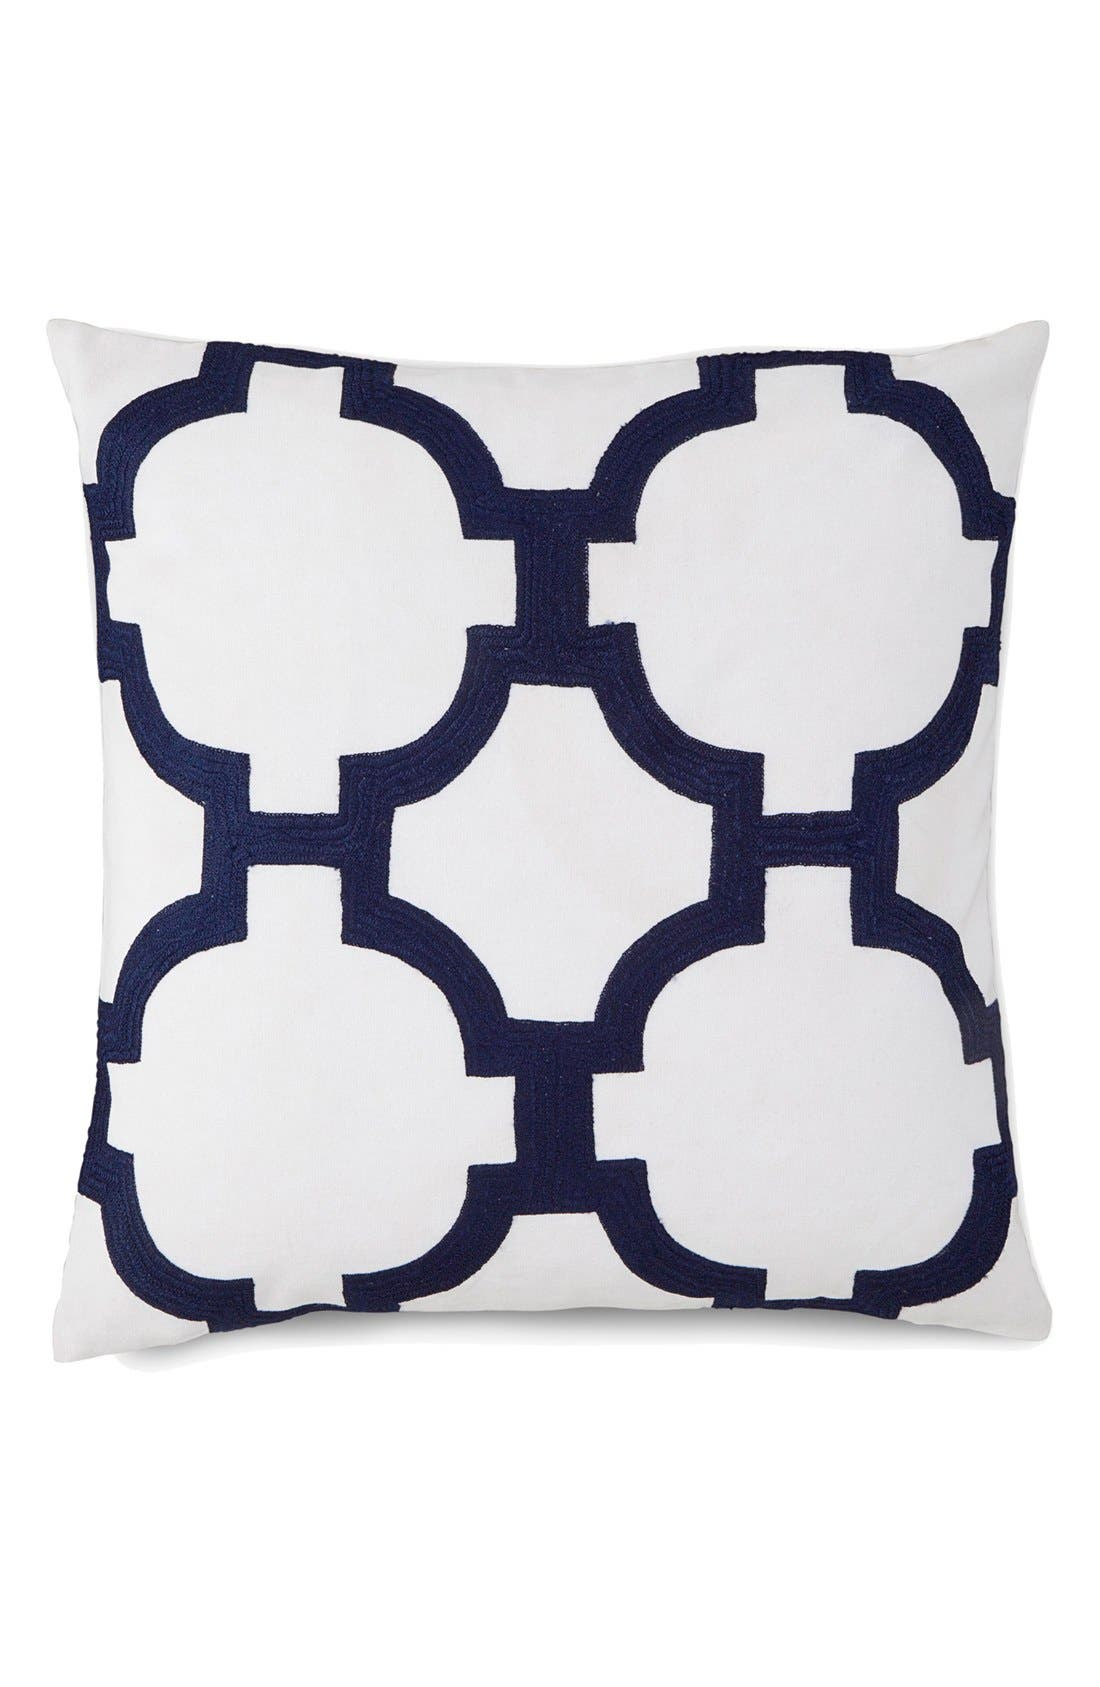 'Embroidered Links' Pillow,                         Main,                         color, 100